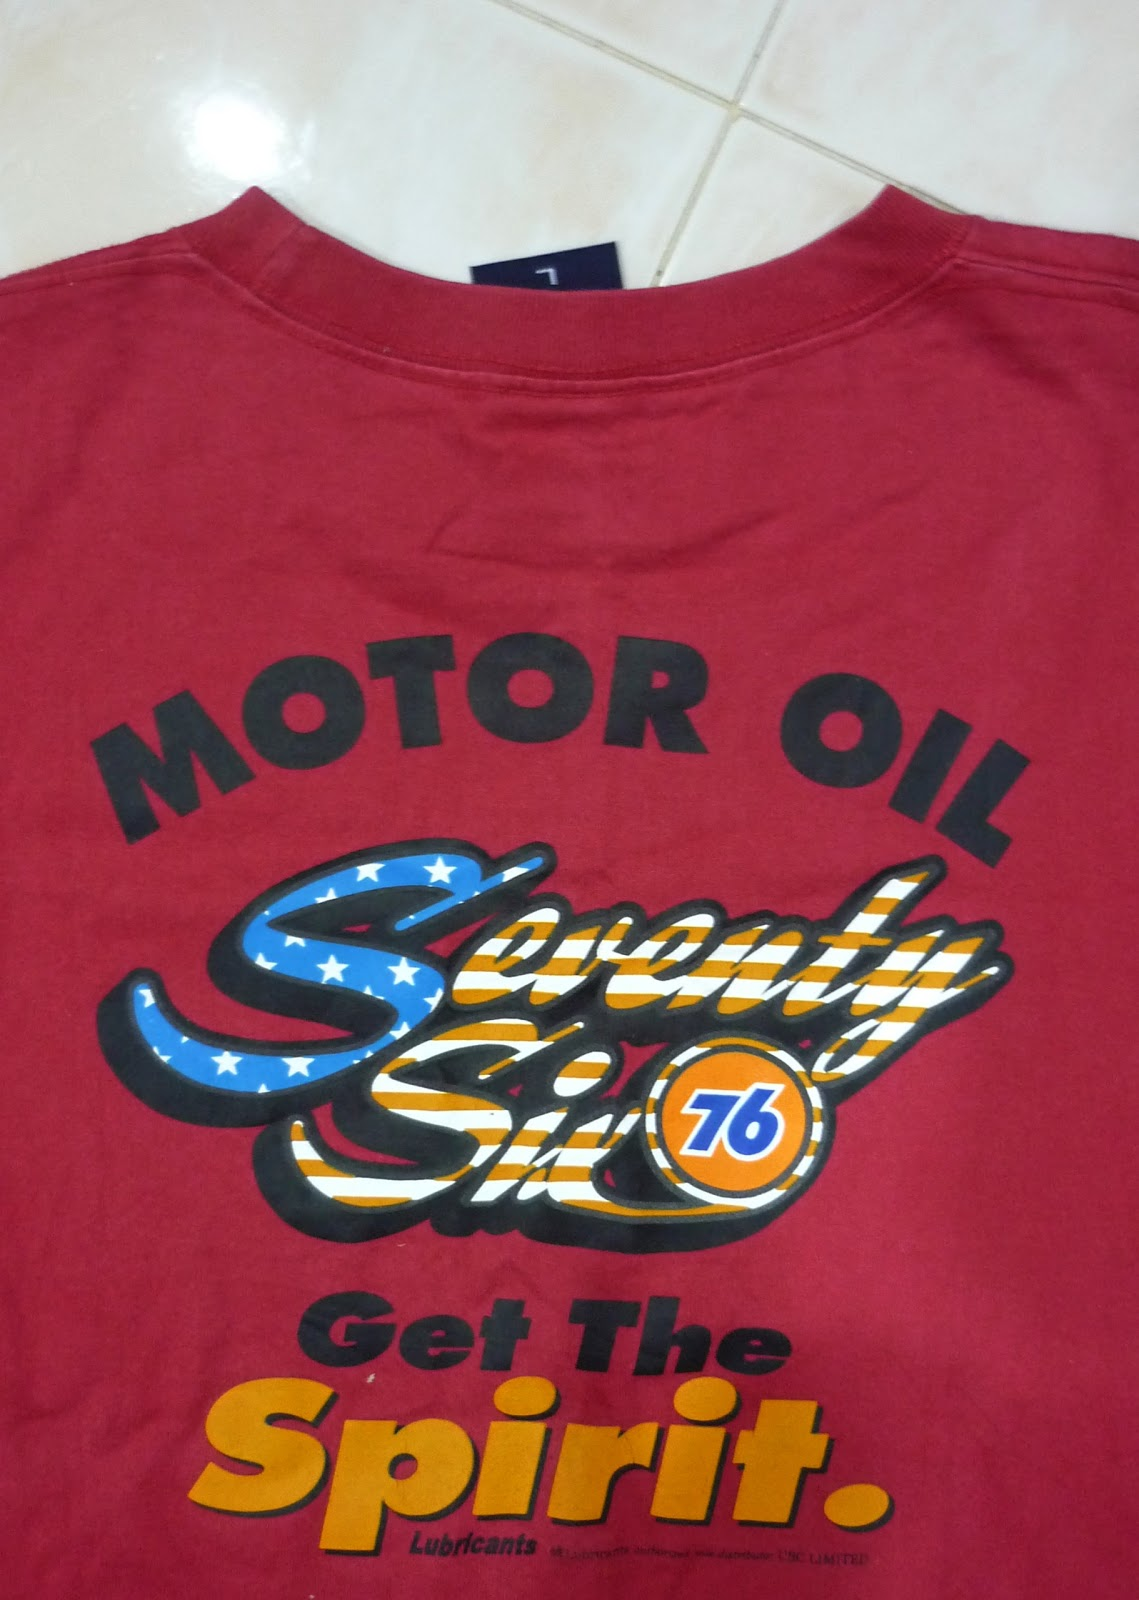 Rchybundle 76 Lubricants Motor Oil Sold